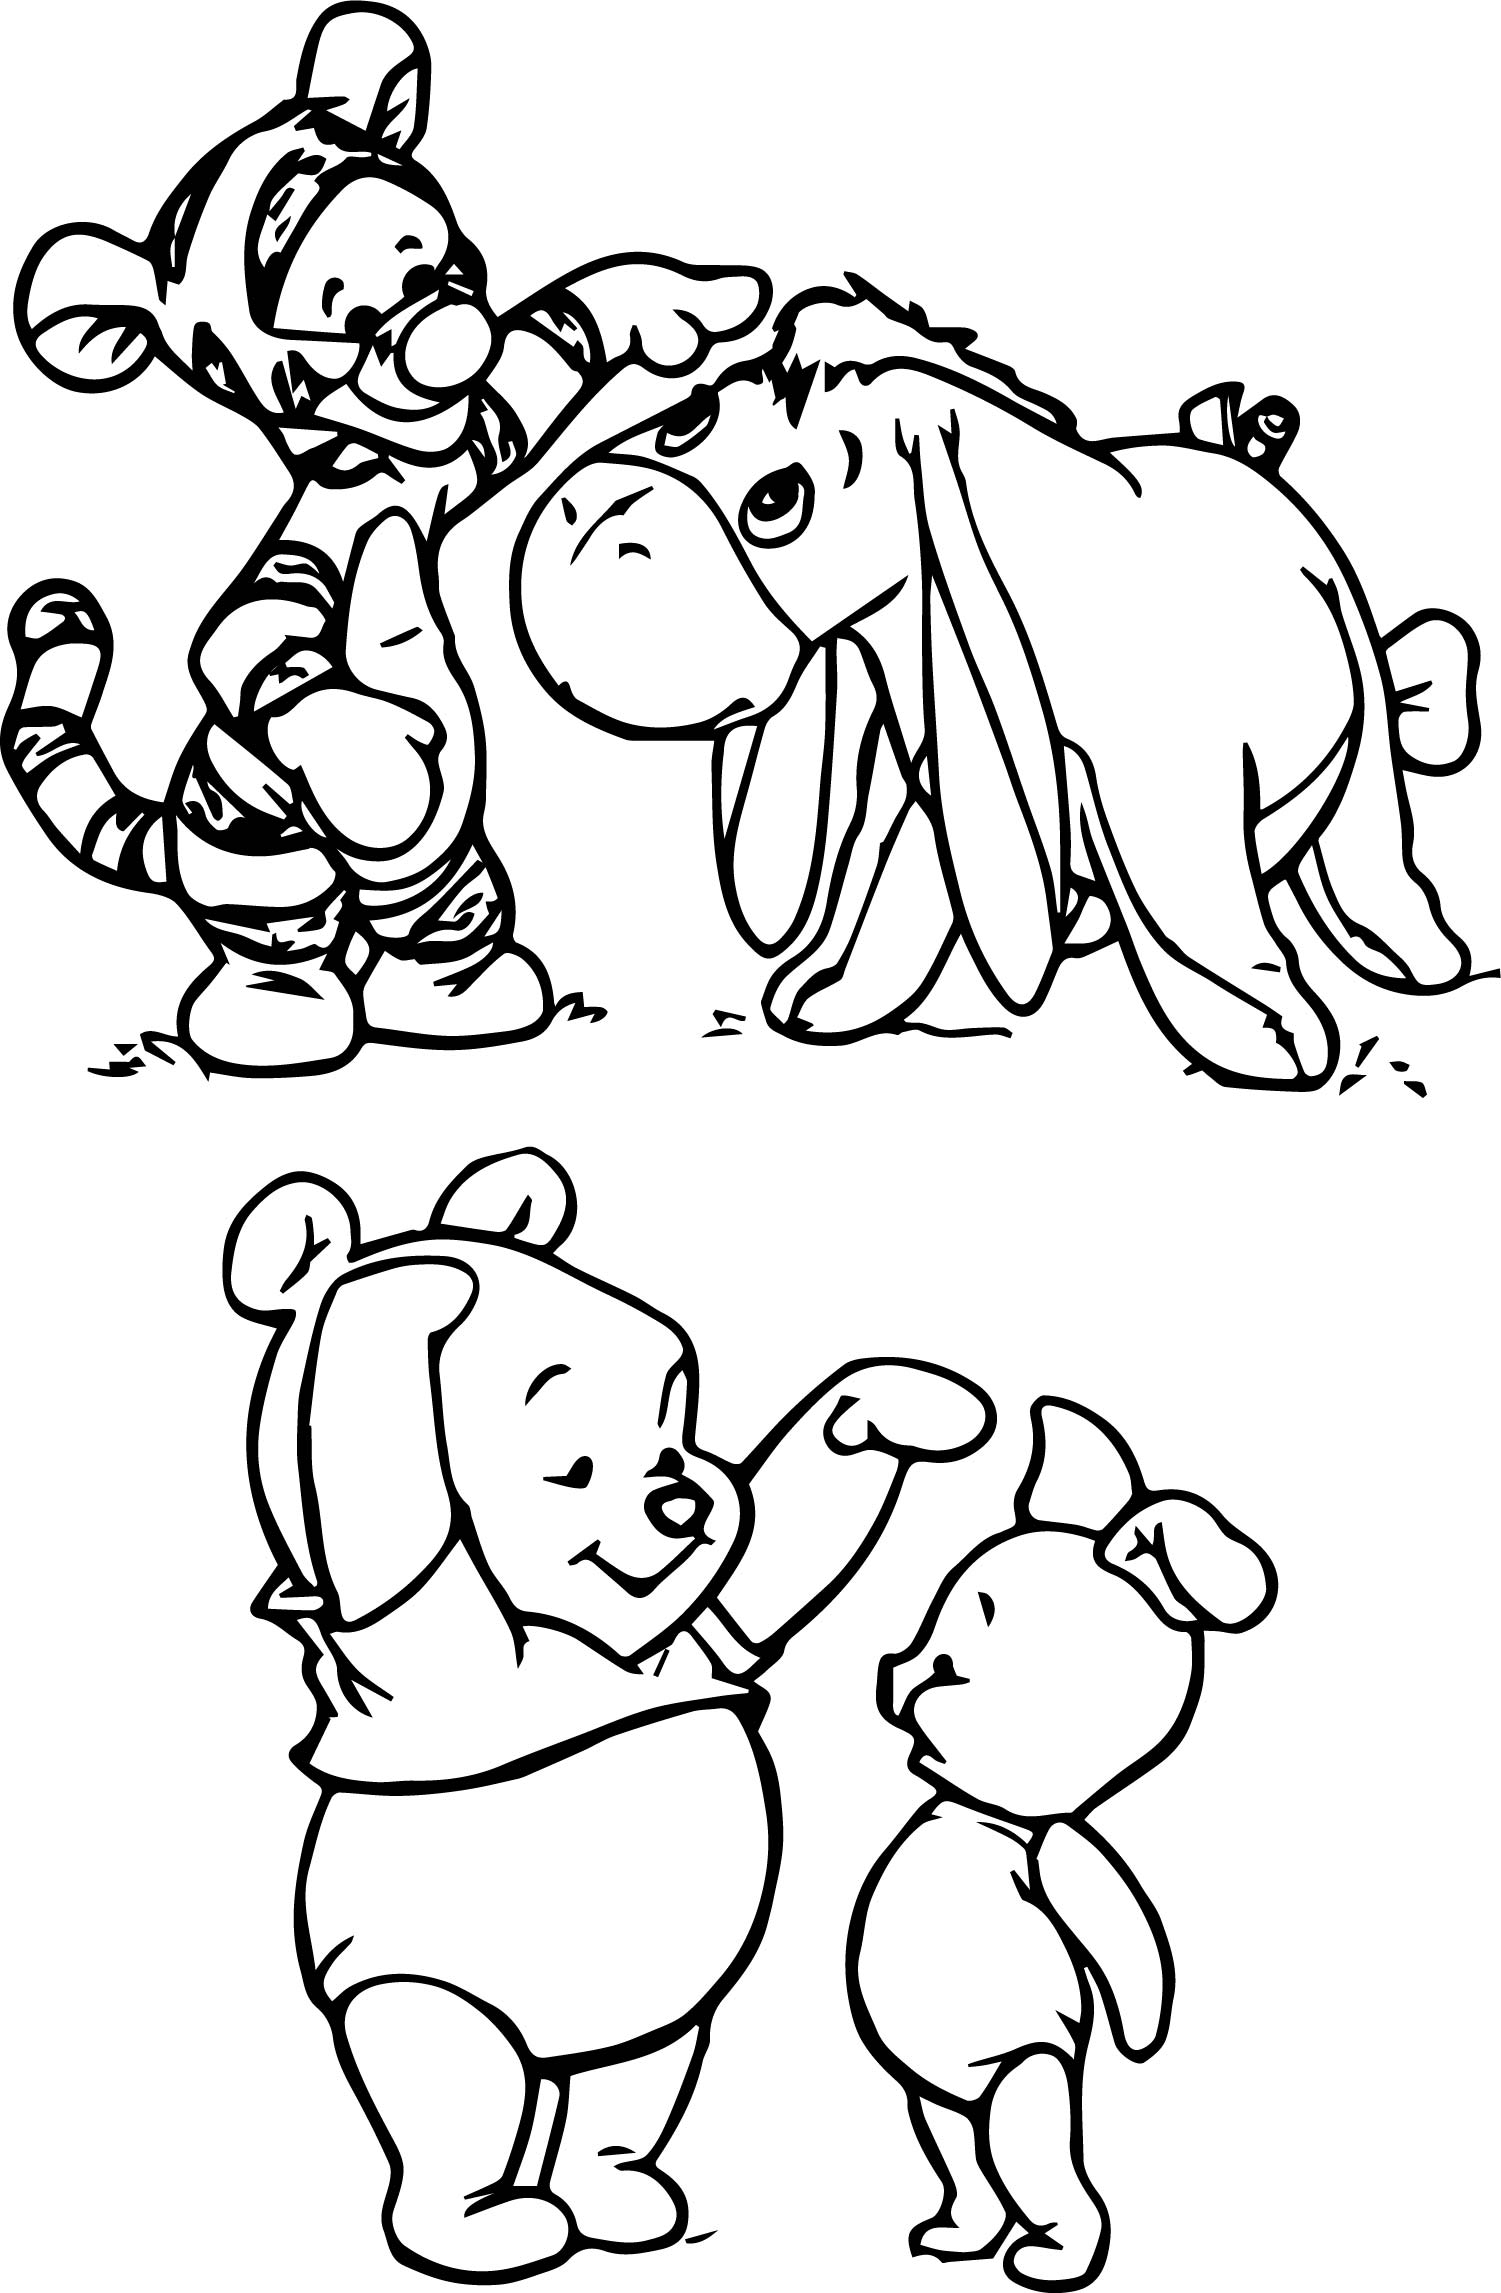 Winnie The Pooh Pooh Piglet Tigger And Eeyore Coloring Page